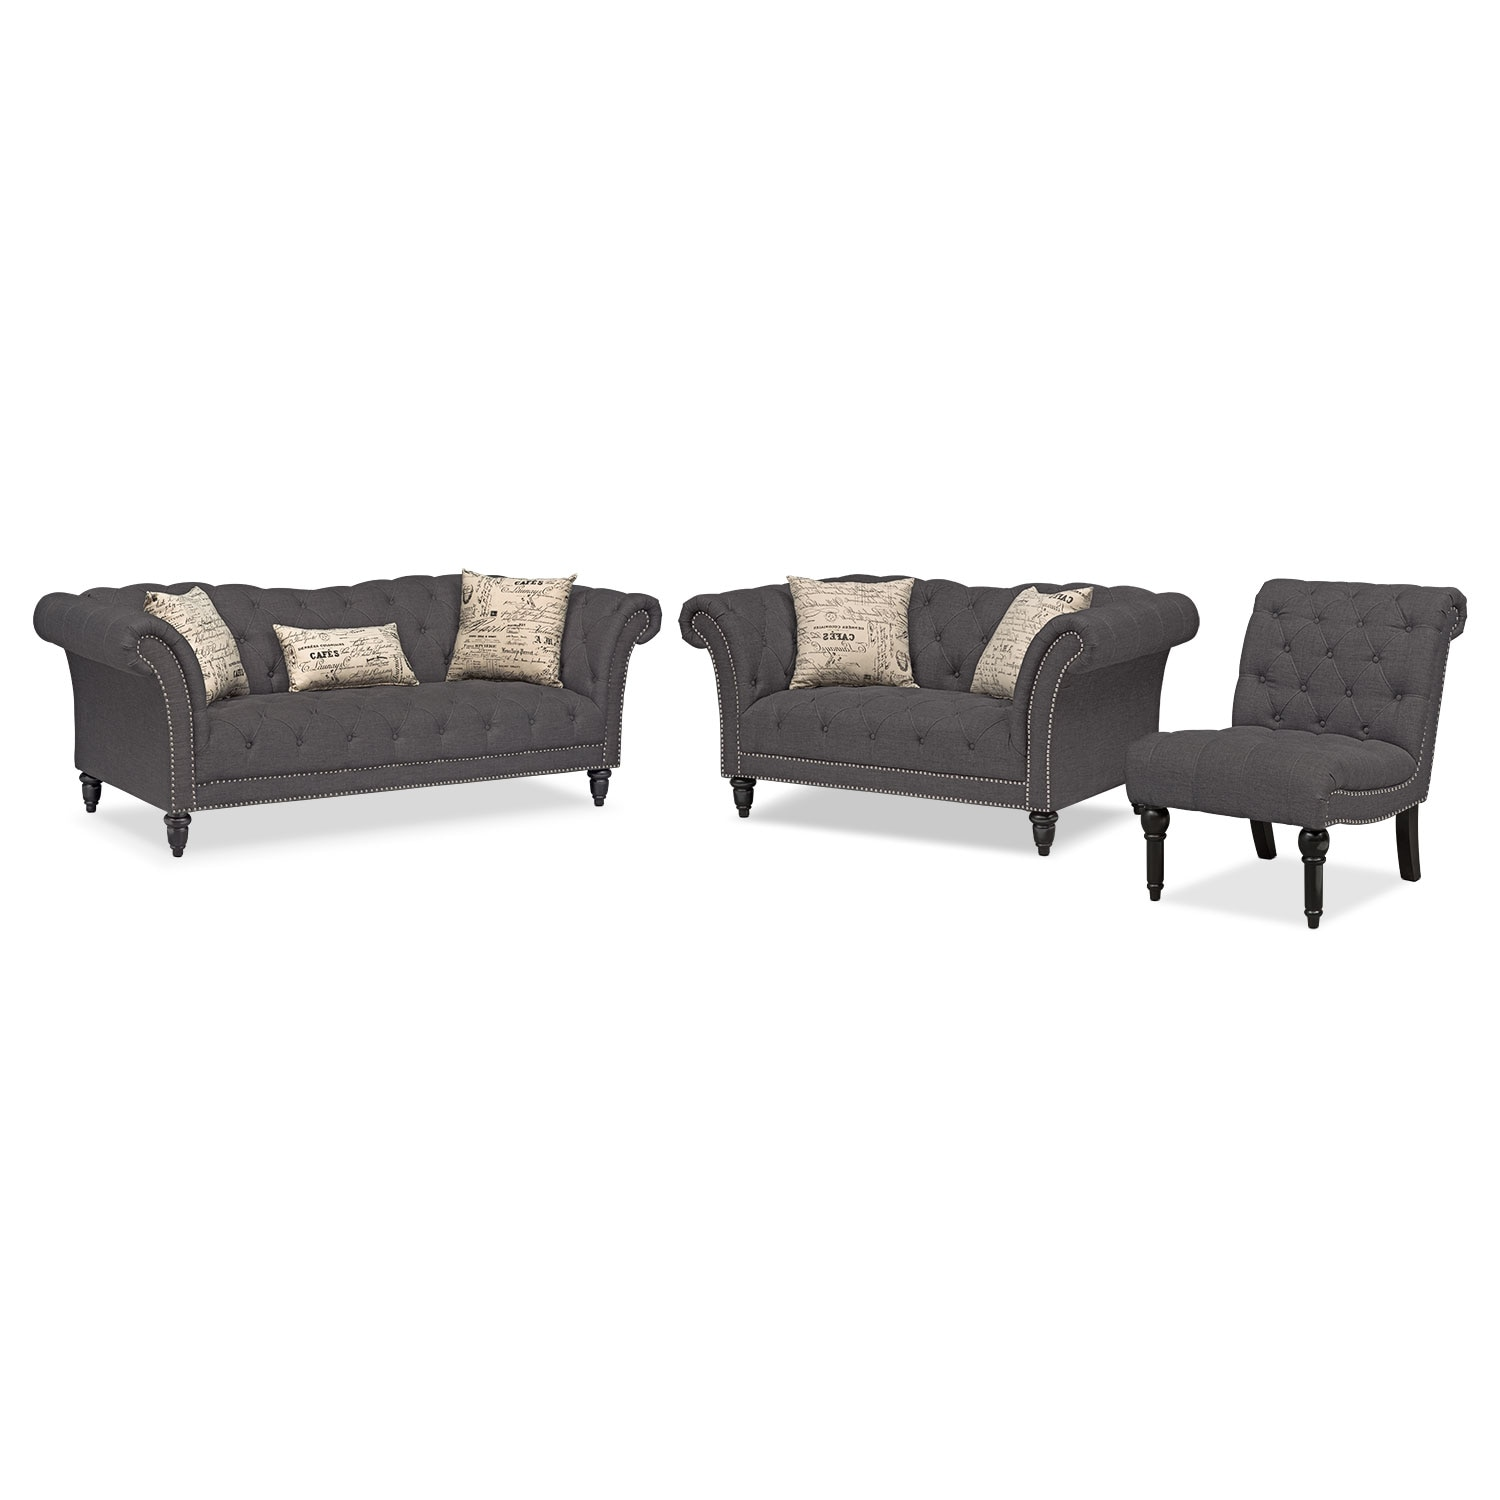 Marisol Sofa, Loveseat and Armless Chair Set - Charcoal